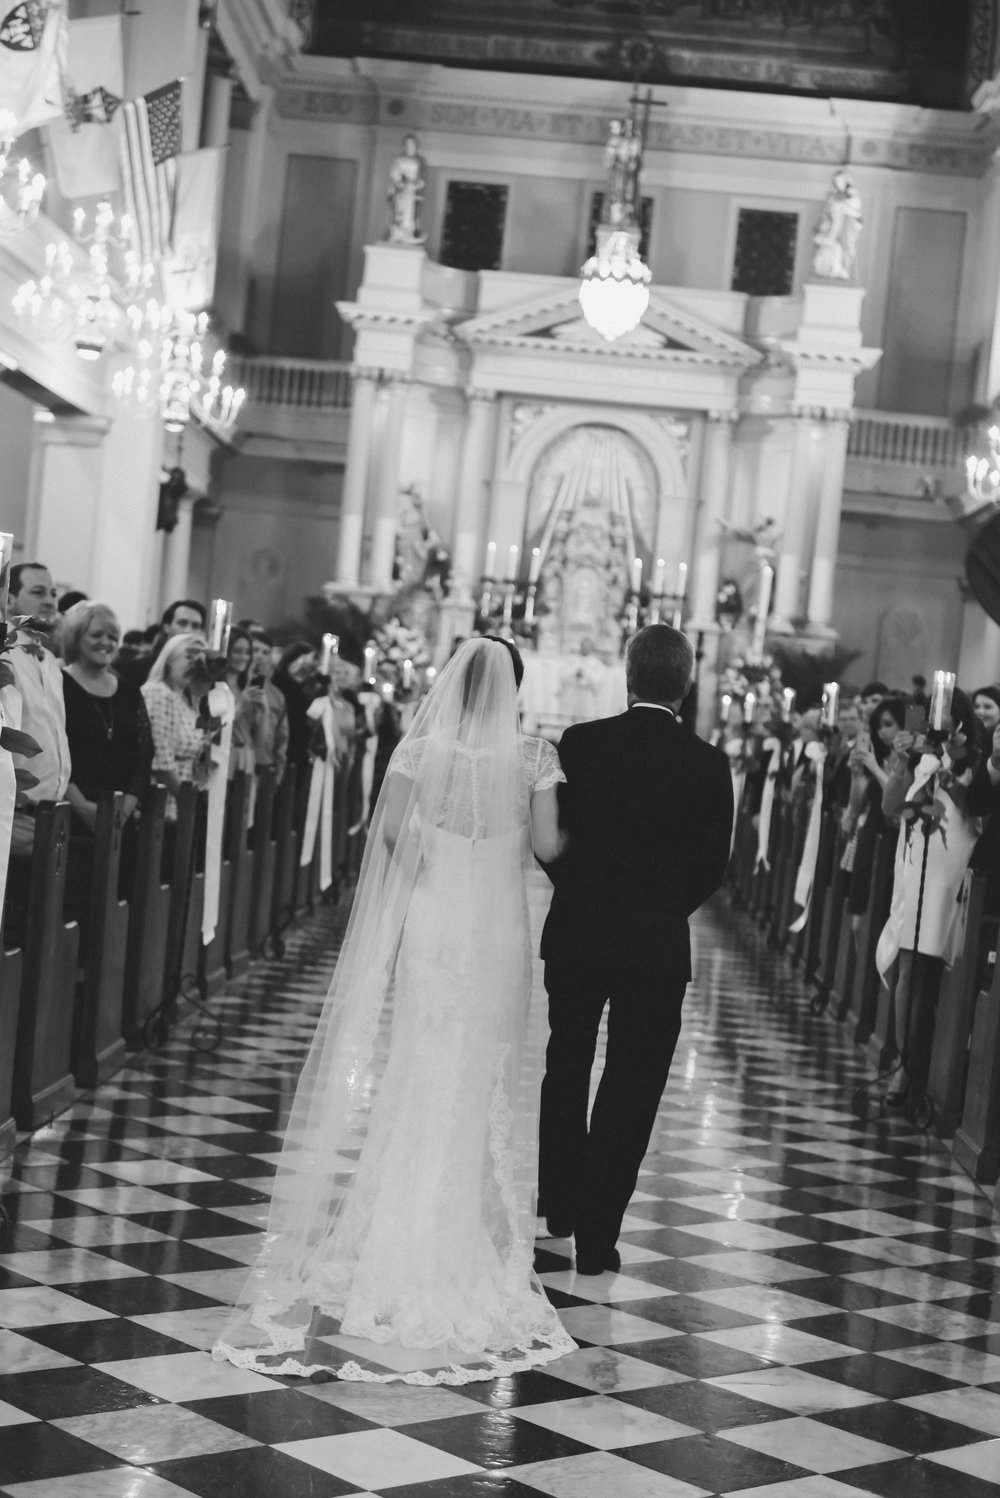 NEW ORLEANS, LA - April 18, 2015: Joffrion/DeLaRosa Wedding at the St. Louis Cathedral and Omni Hotel in New Orleans, Louisiana. (photo by Adrienne Battistella, 2015)